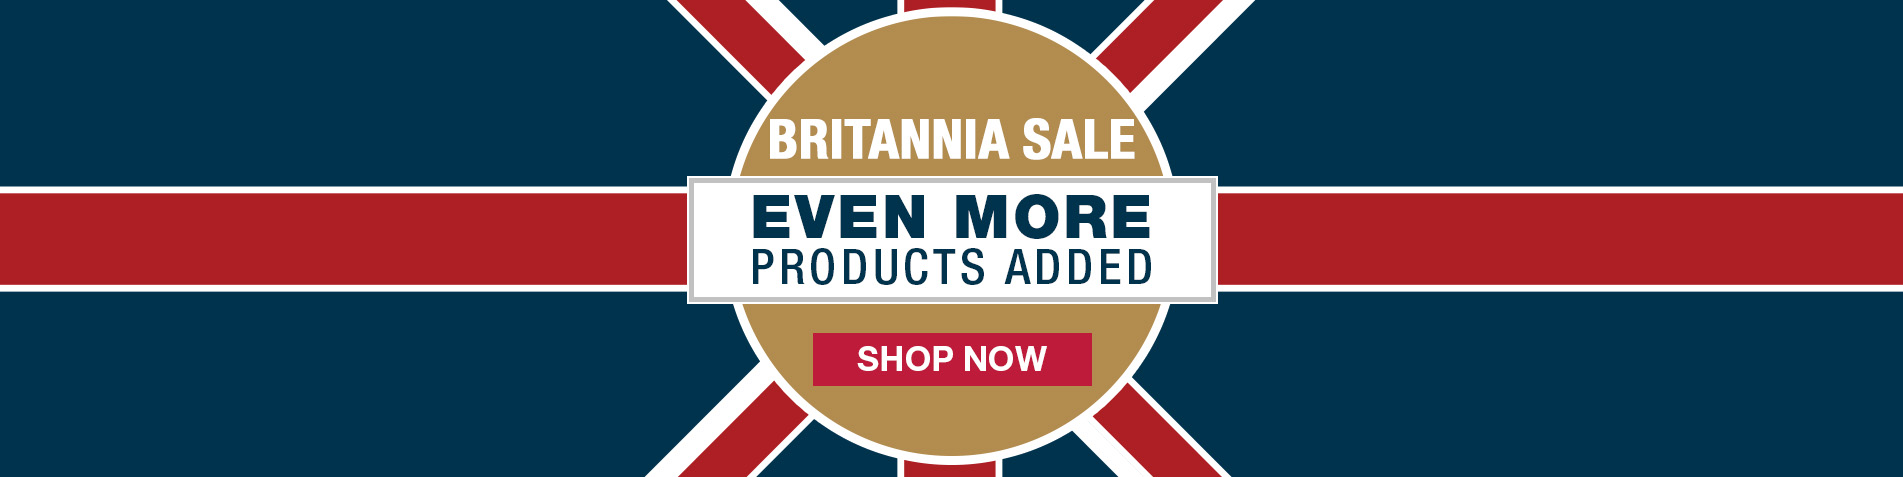 Britannia Sale - More Products Added